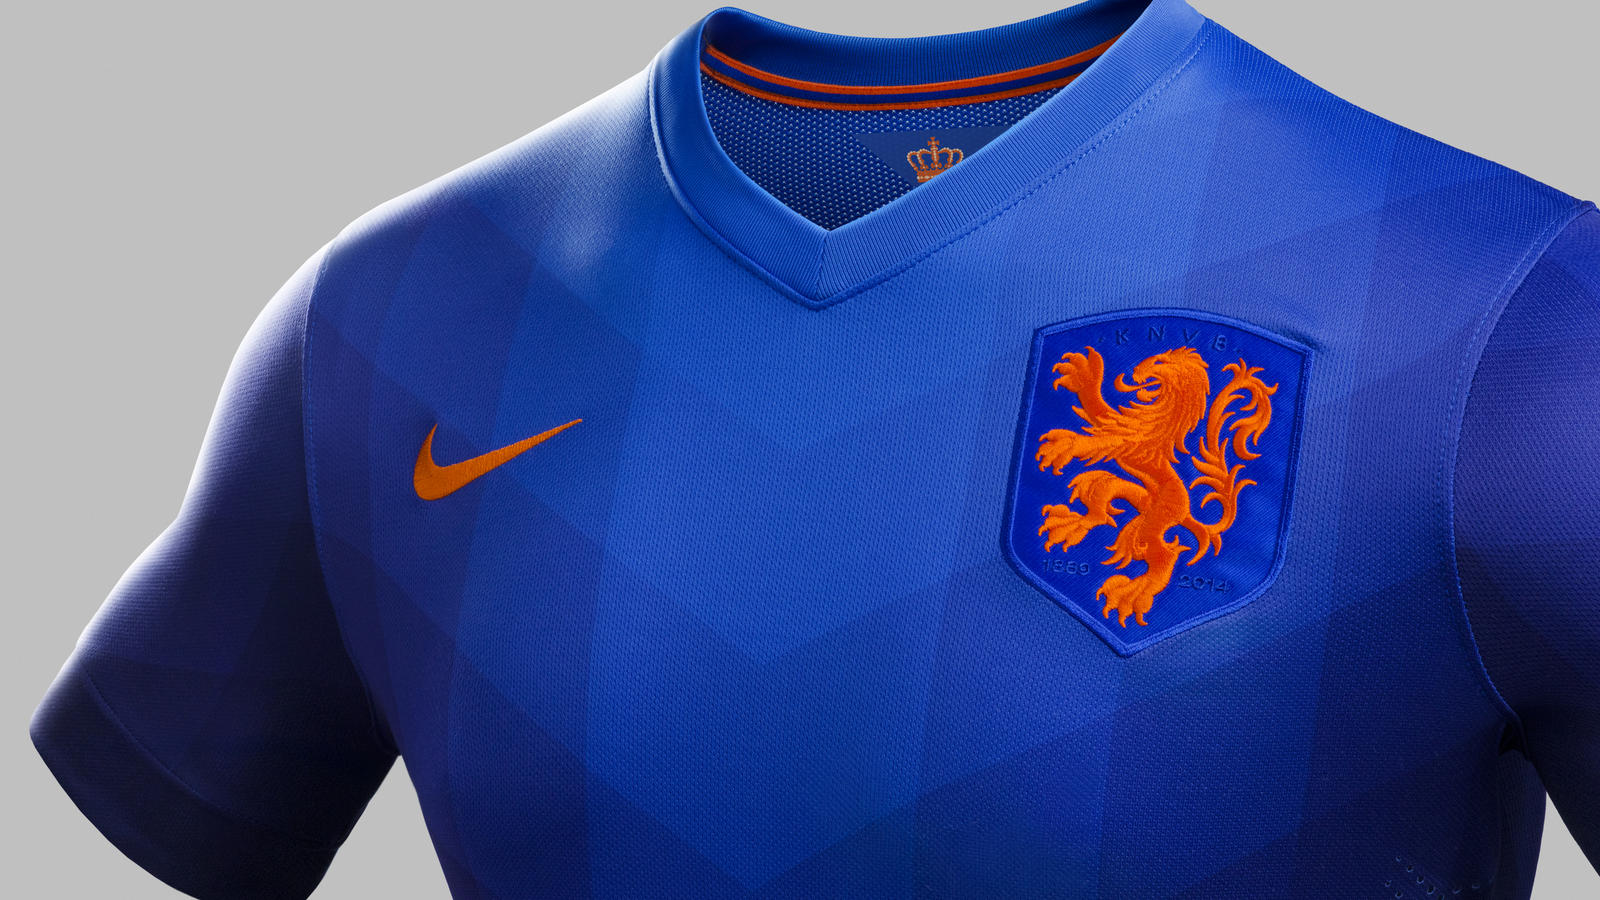 reputable site da86e 4791a The Netherlands Unveils Nike Away Kit for 2014 Season - Nike ...